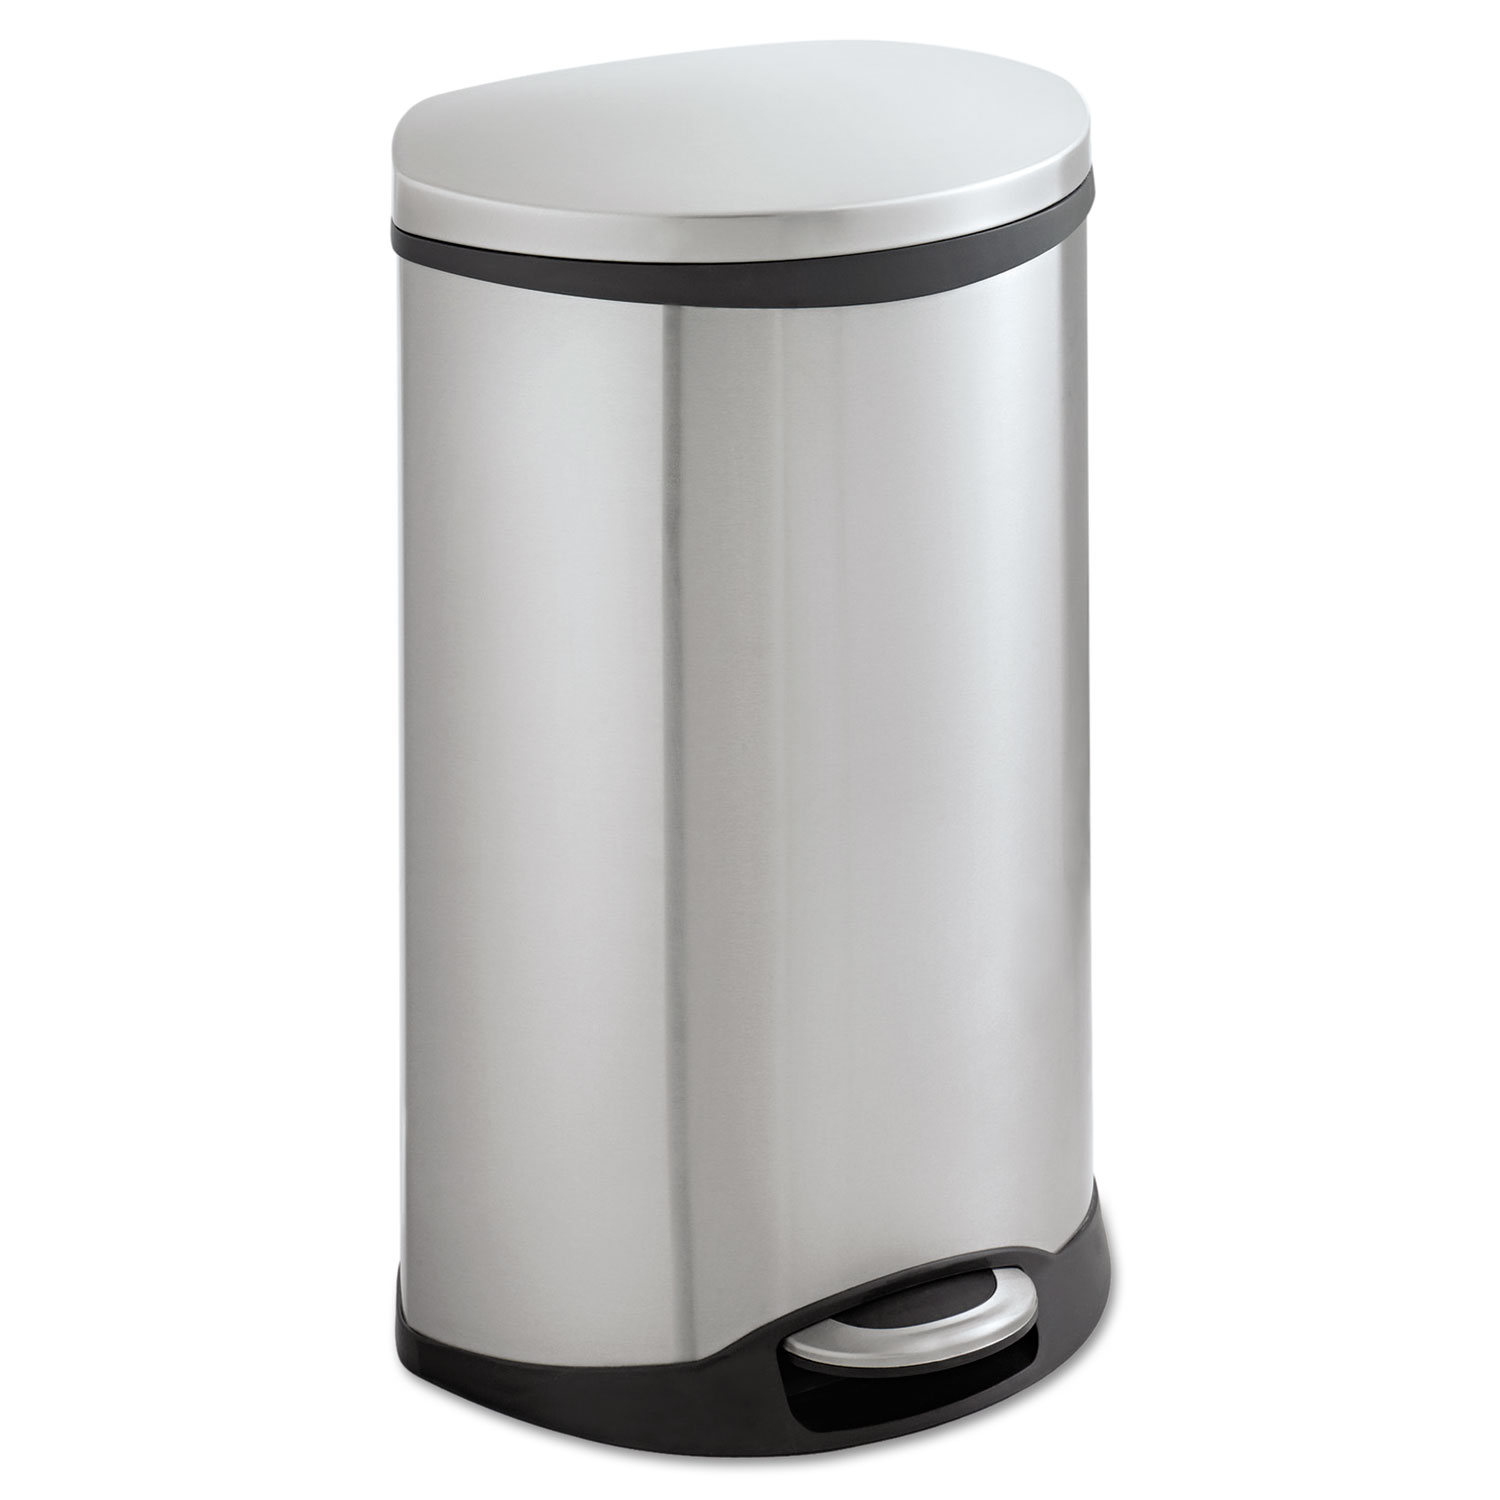 Step-On Medical Receptacle, 12.5gal, Stainless Steel